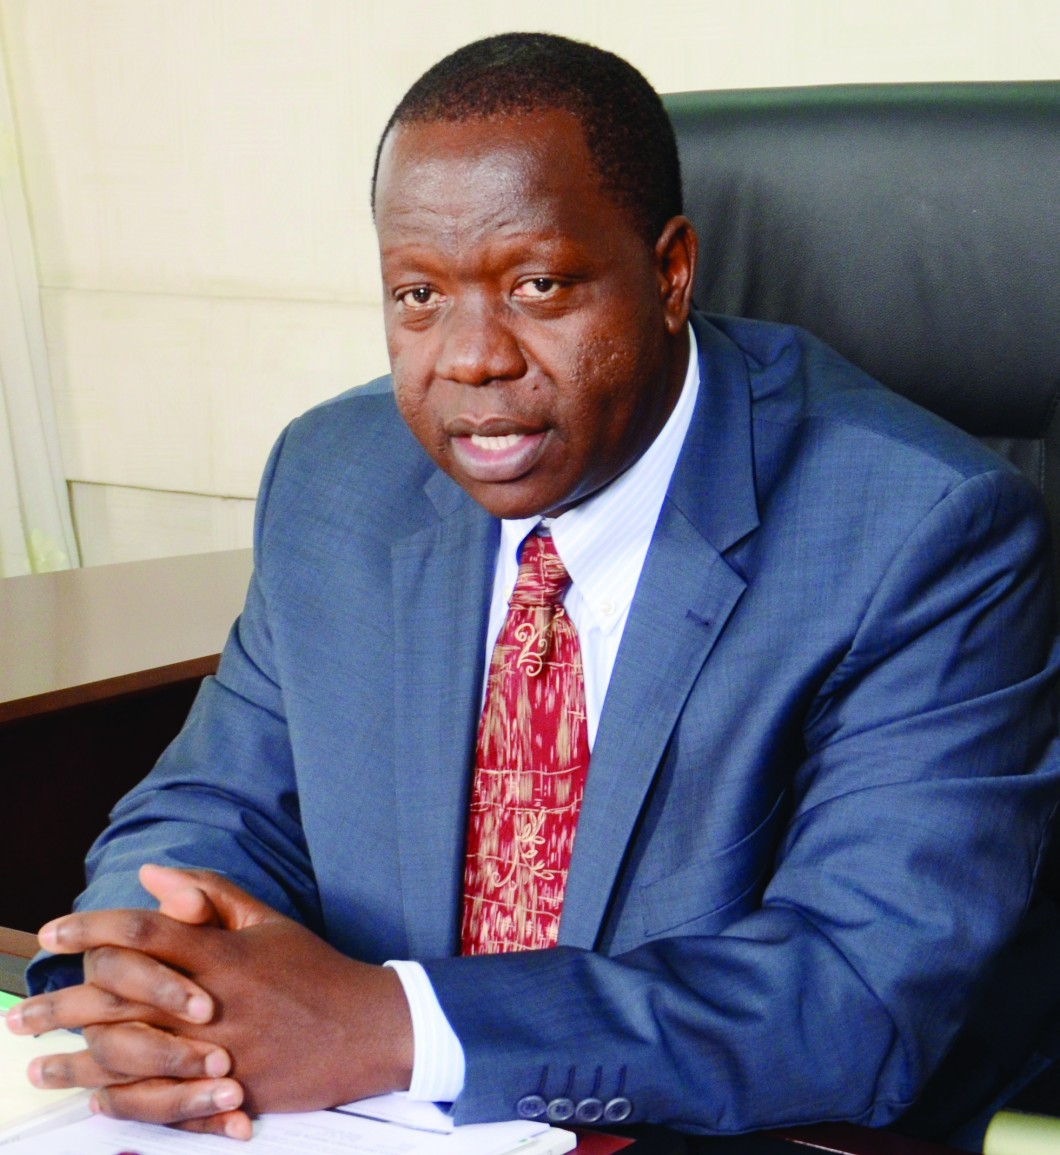 Here is what Matiang'i needs to do to streamline education